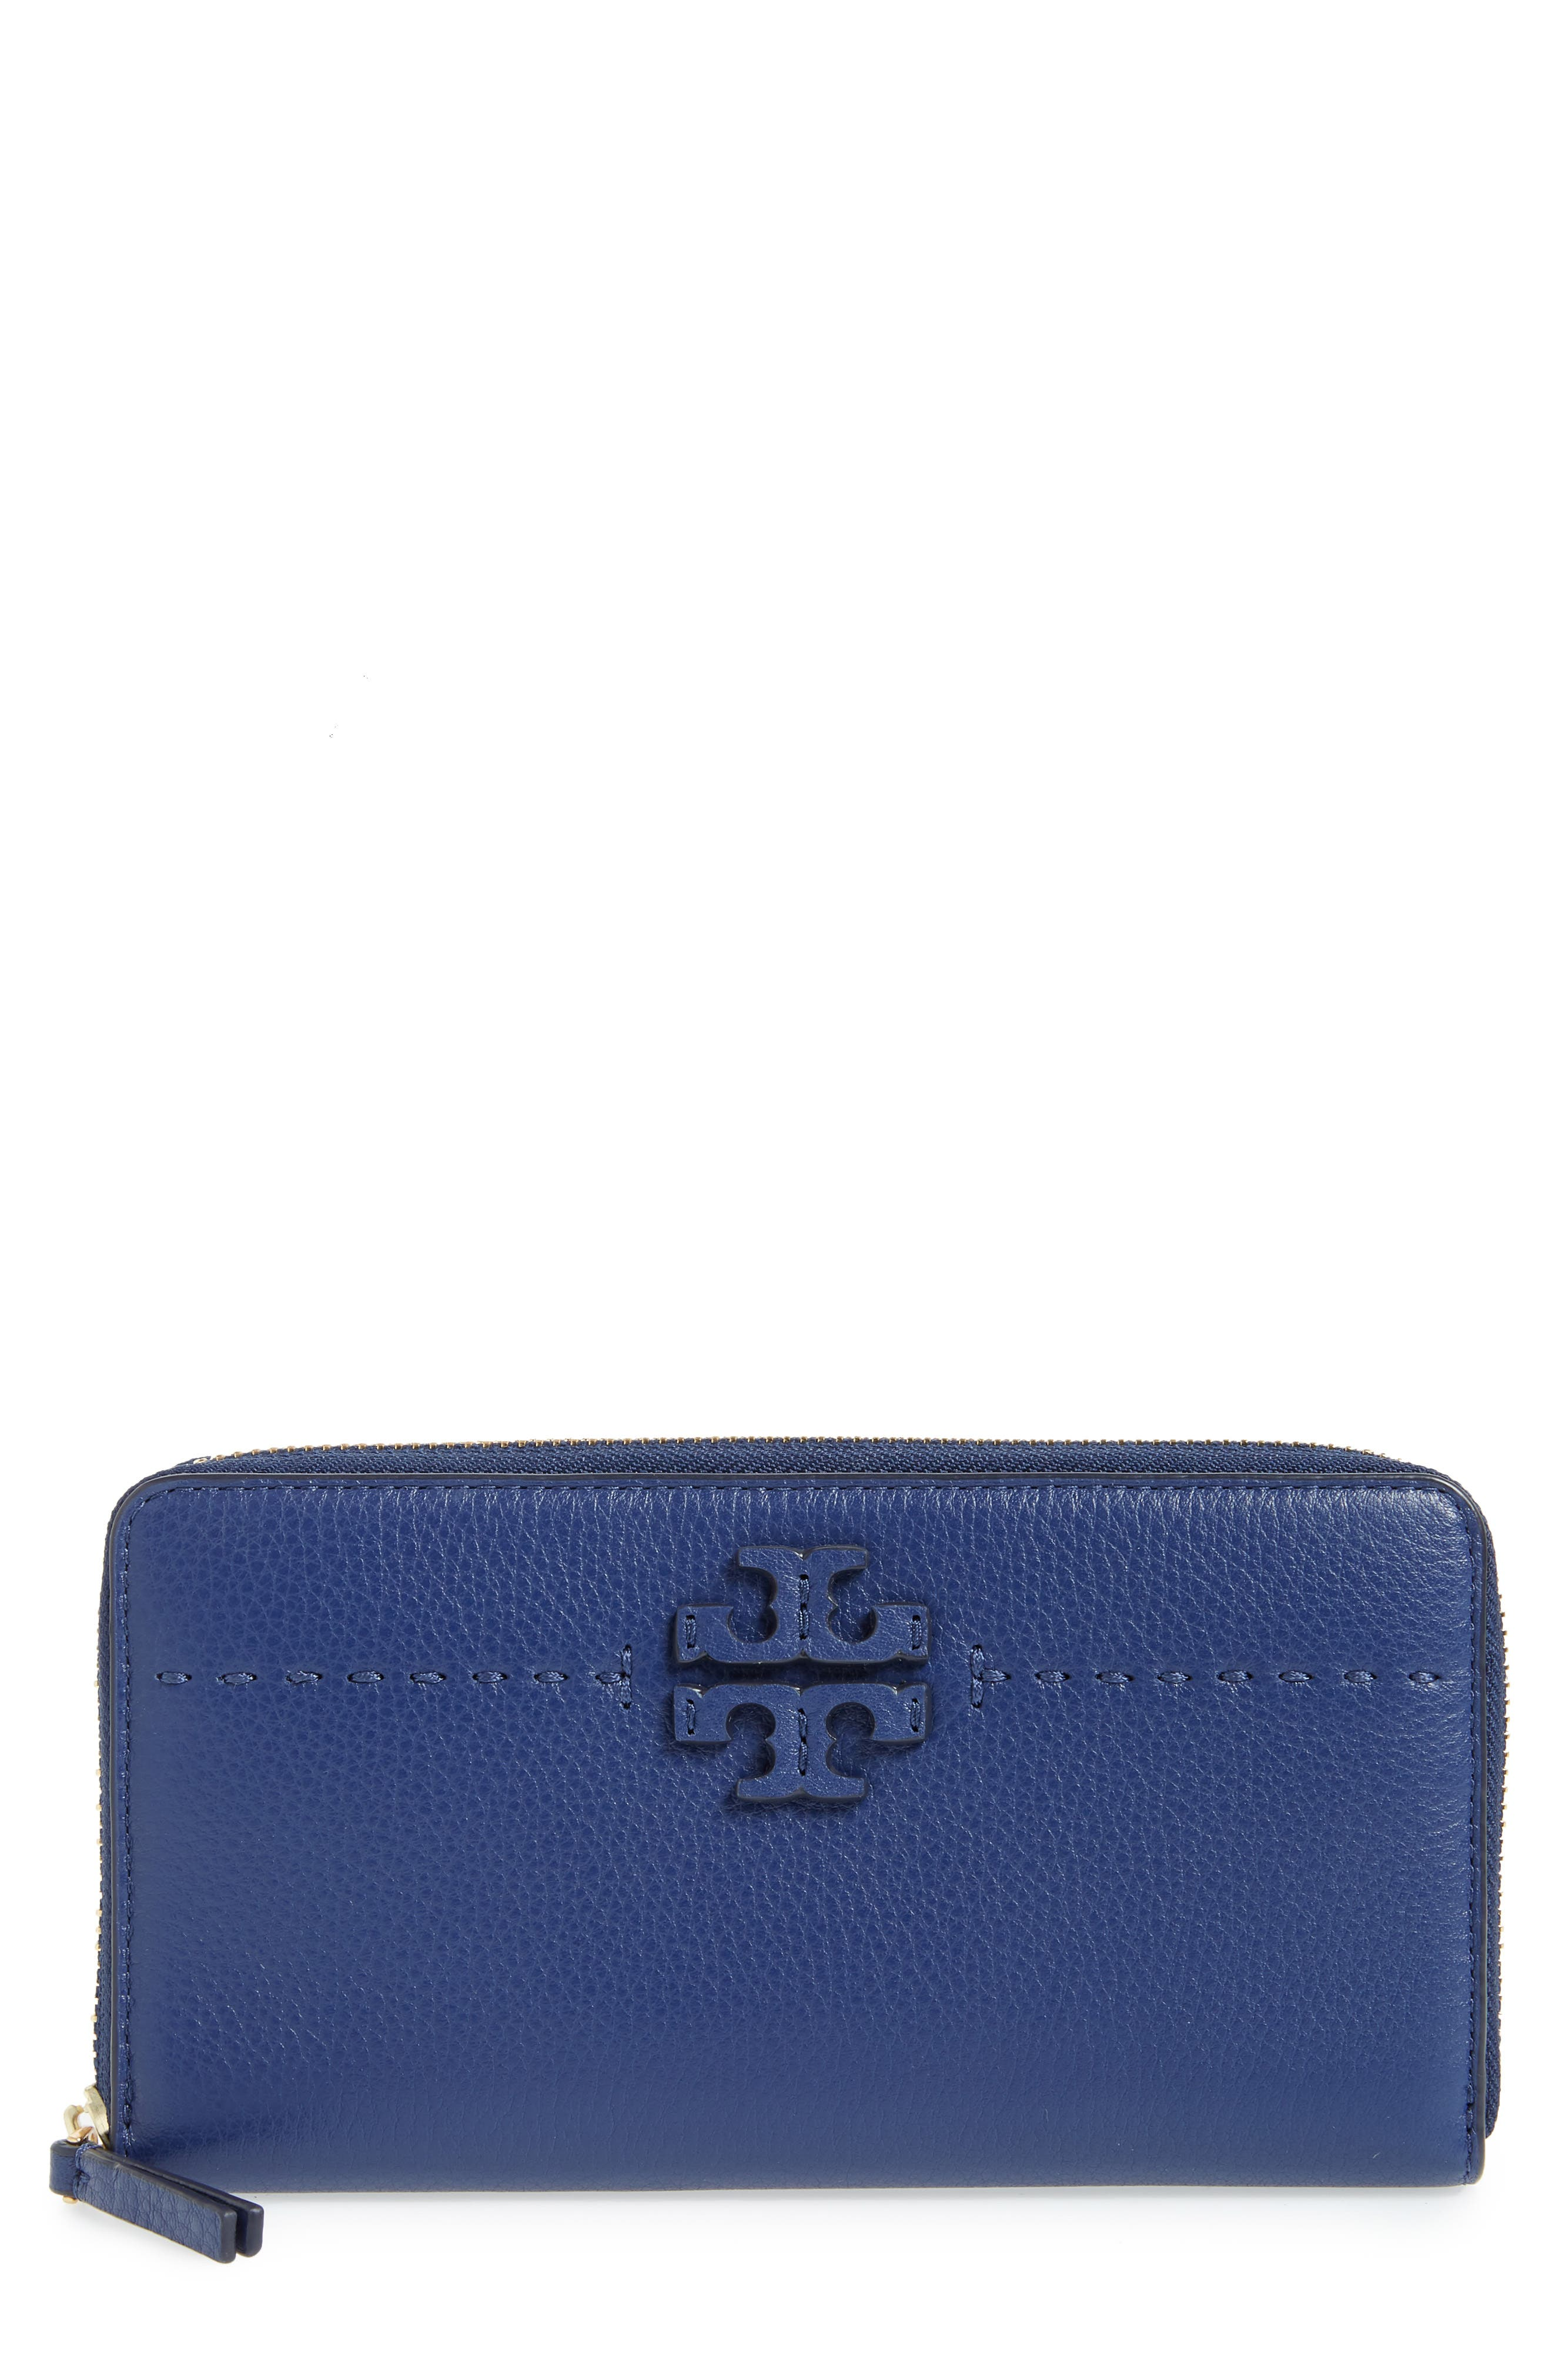 McGraw Leather Continental Zip Wallet,                             Main thumbnail 1, color,                             Bright Indigo